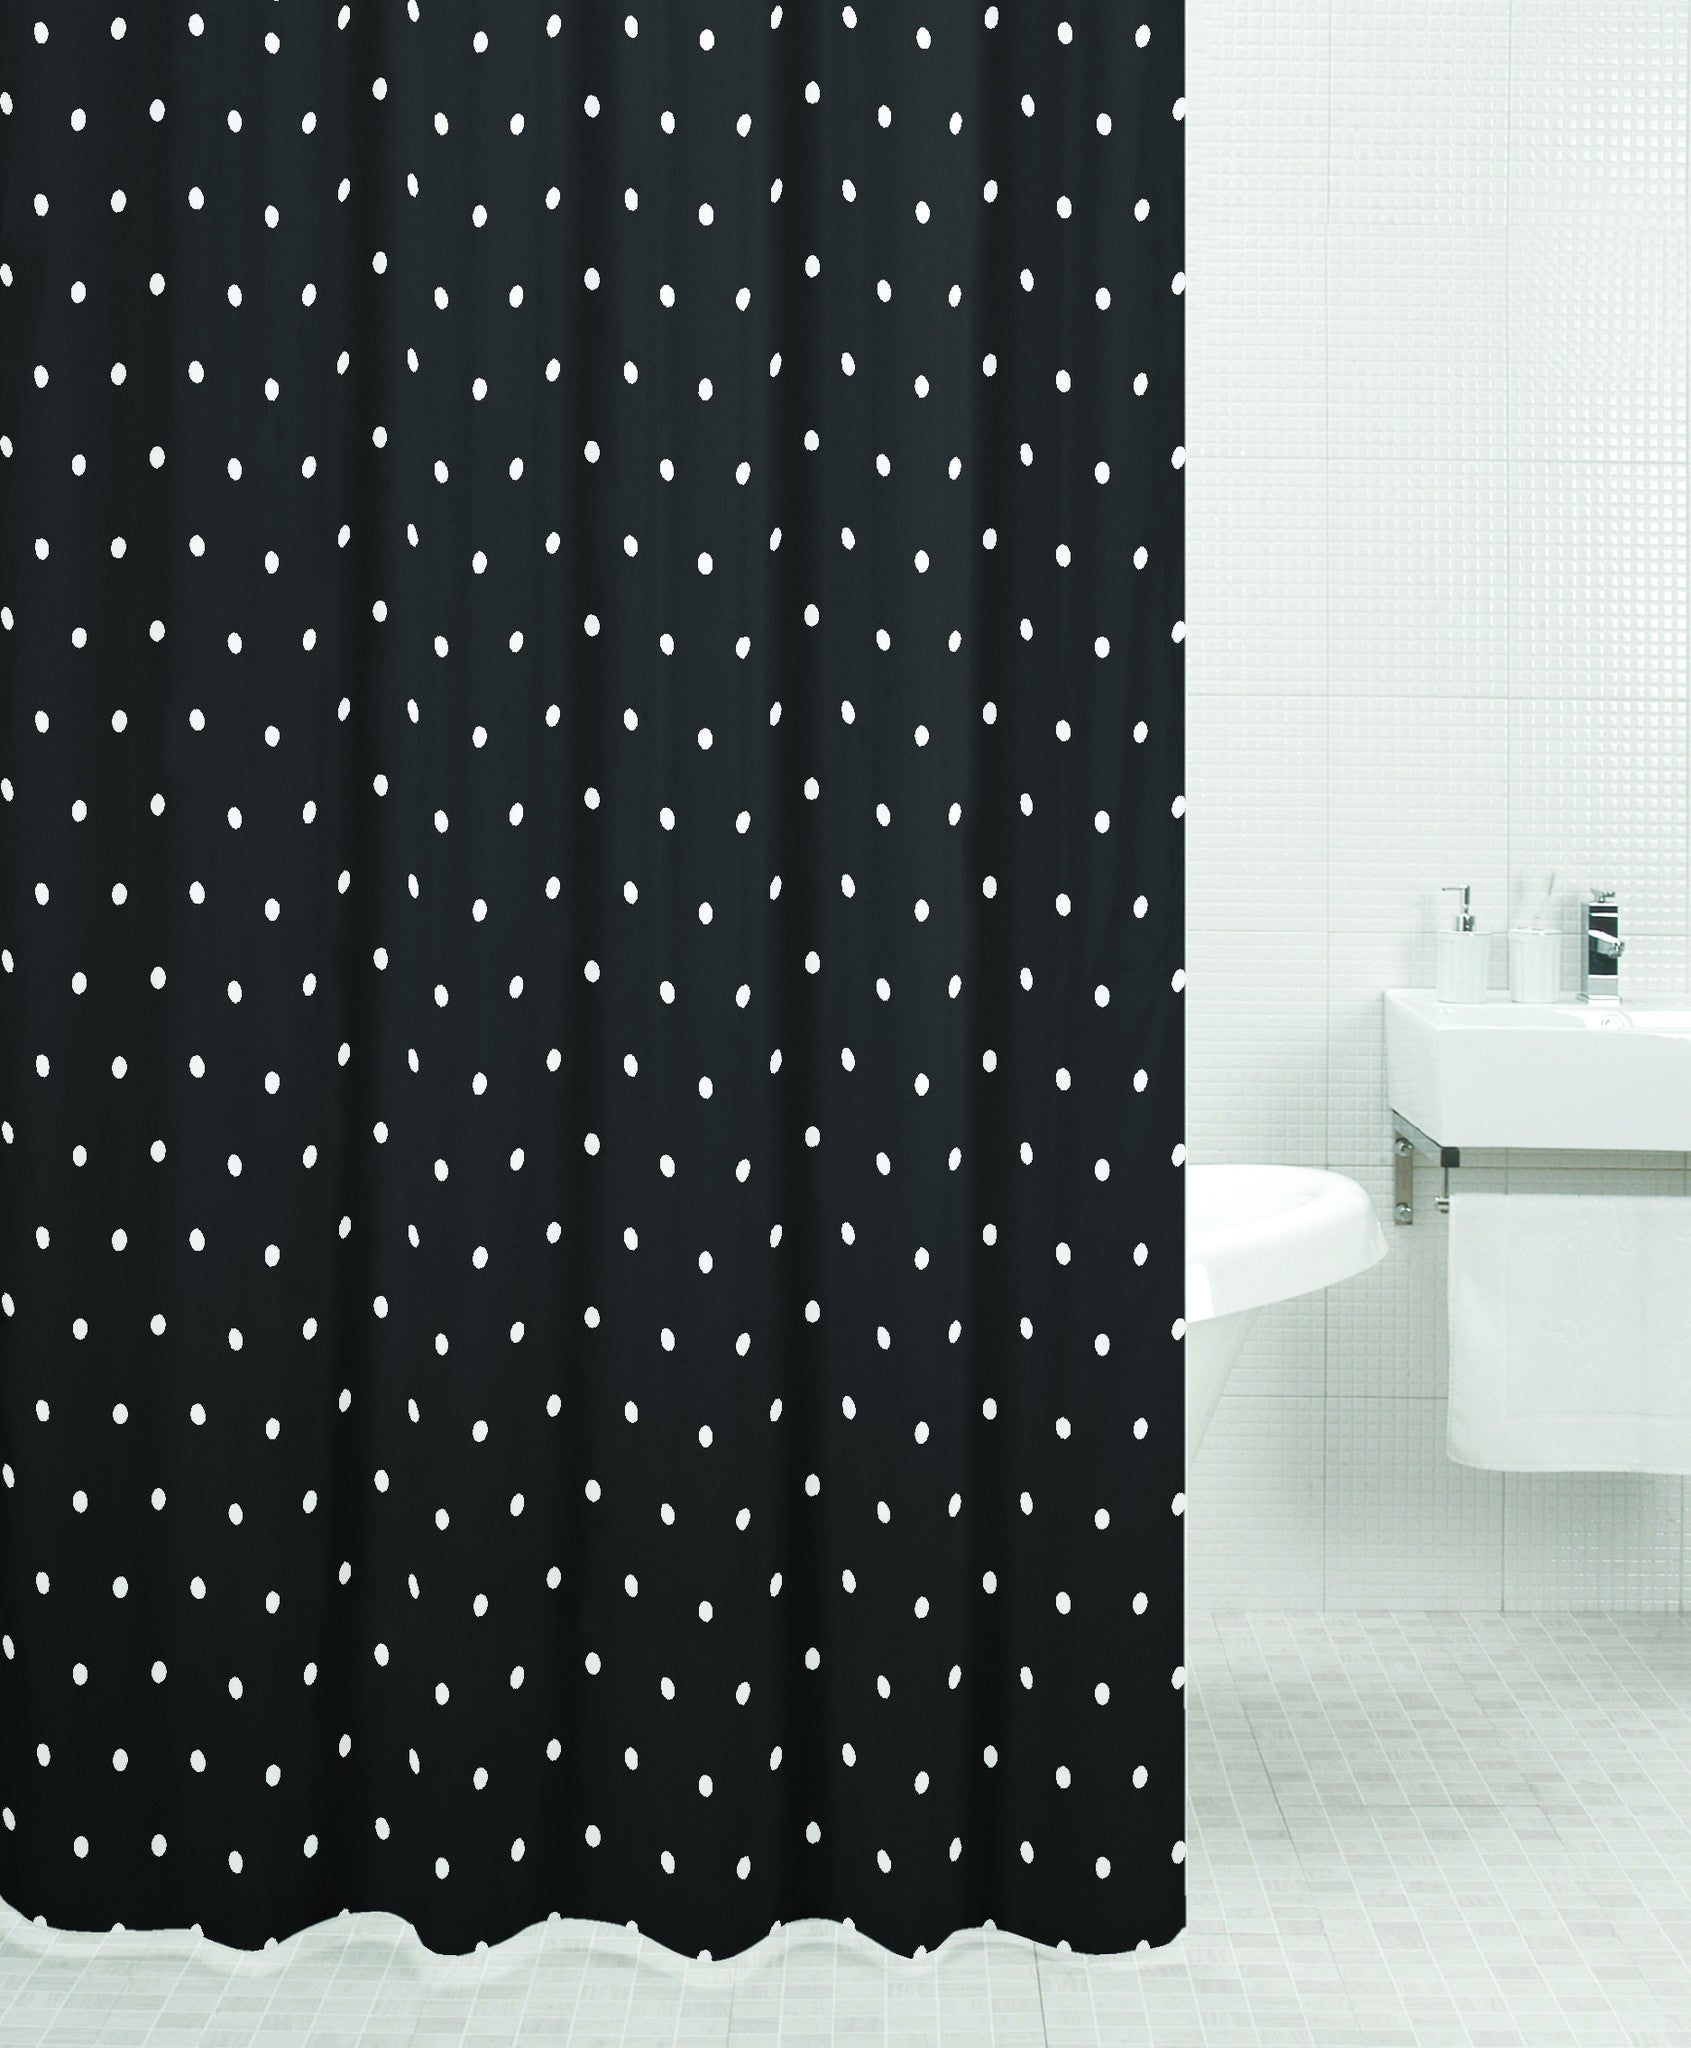 Sabichi Black Spot Polyester Shower Curtain-110398 - Homely Nigeria